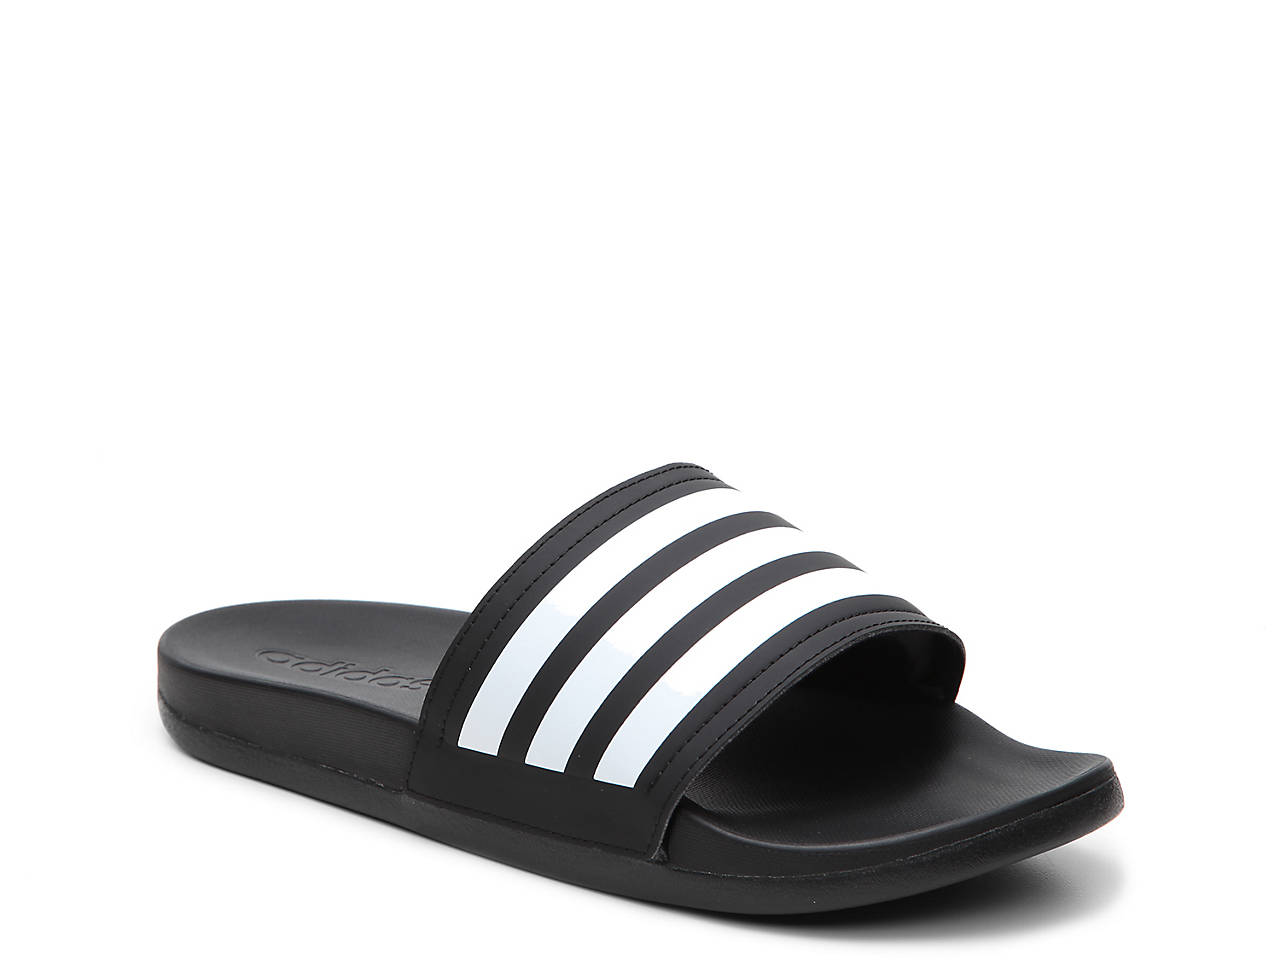 0163e6558 adidas Adilette Cloudfoam Ultra Stripes Slide Sandal - Women s ...